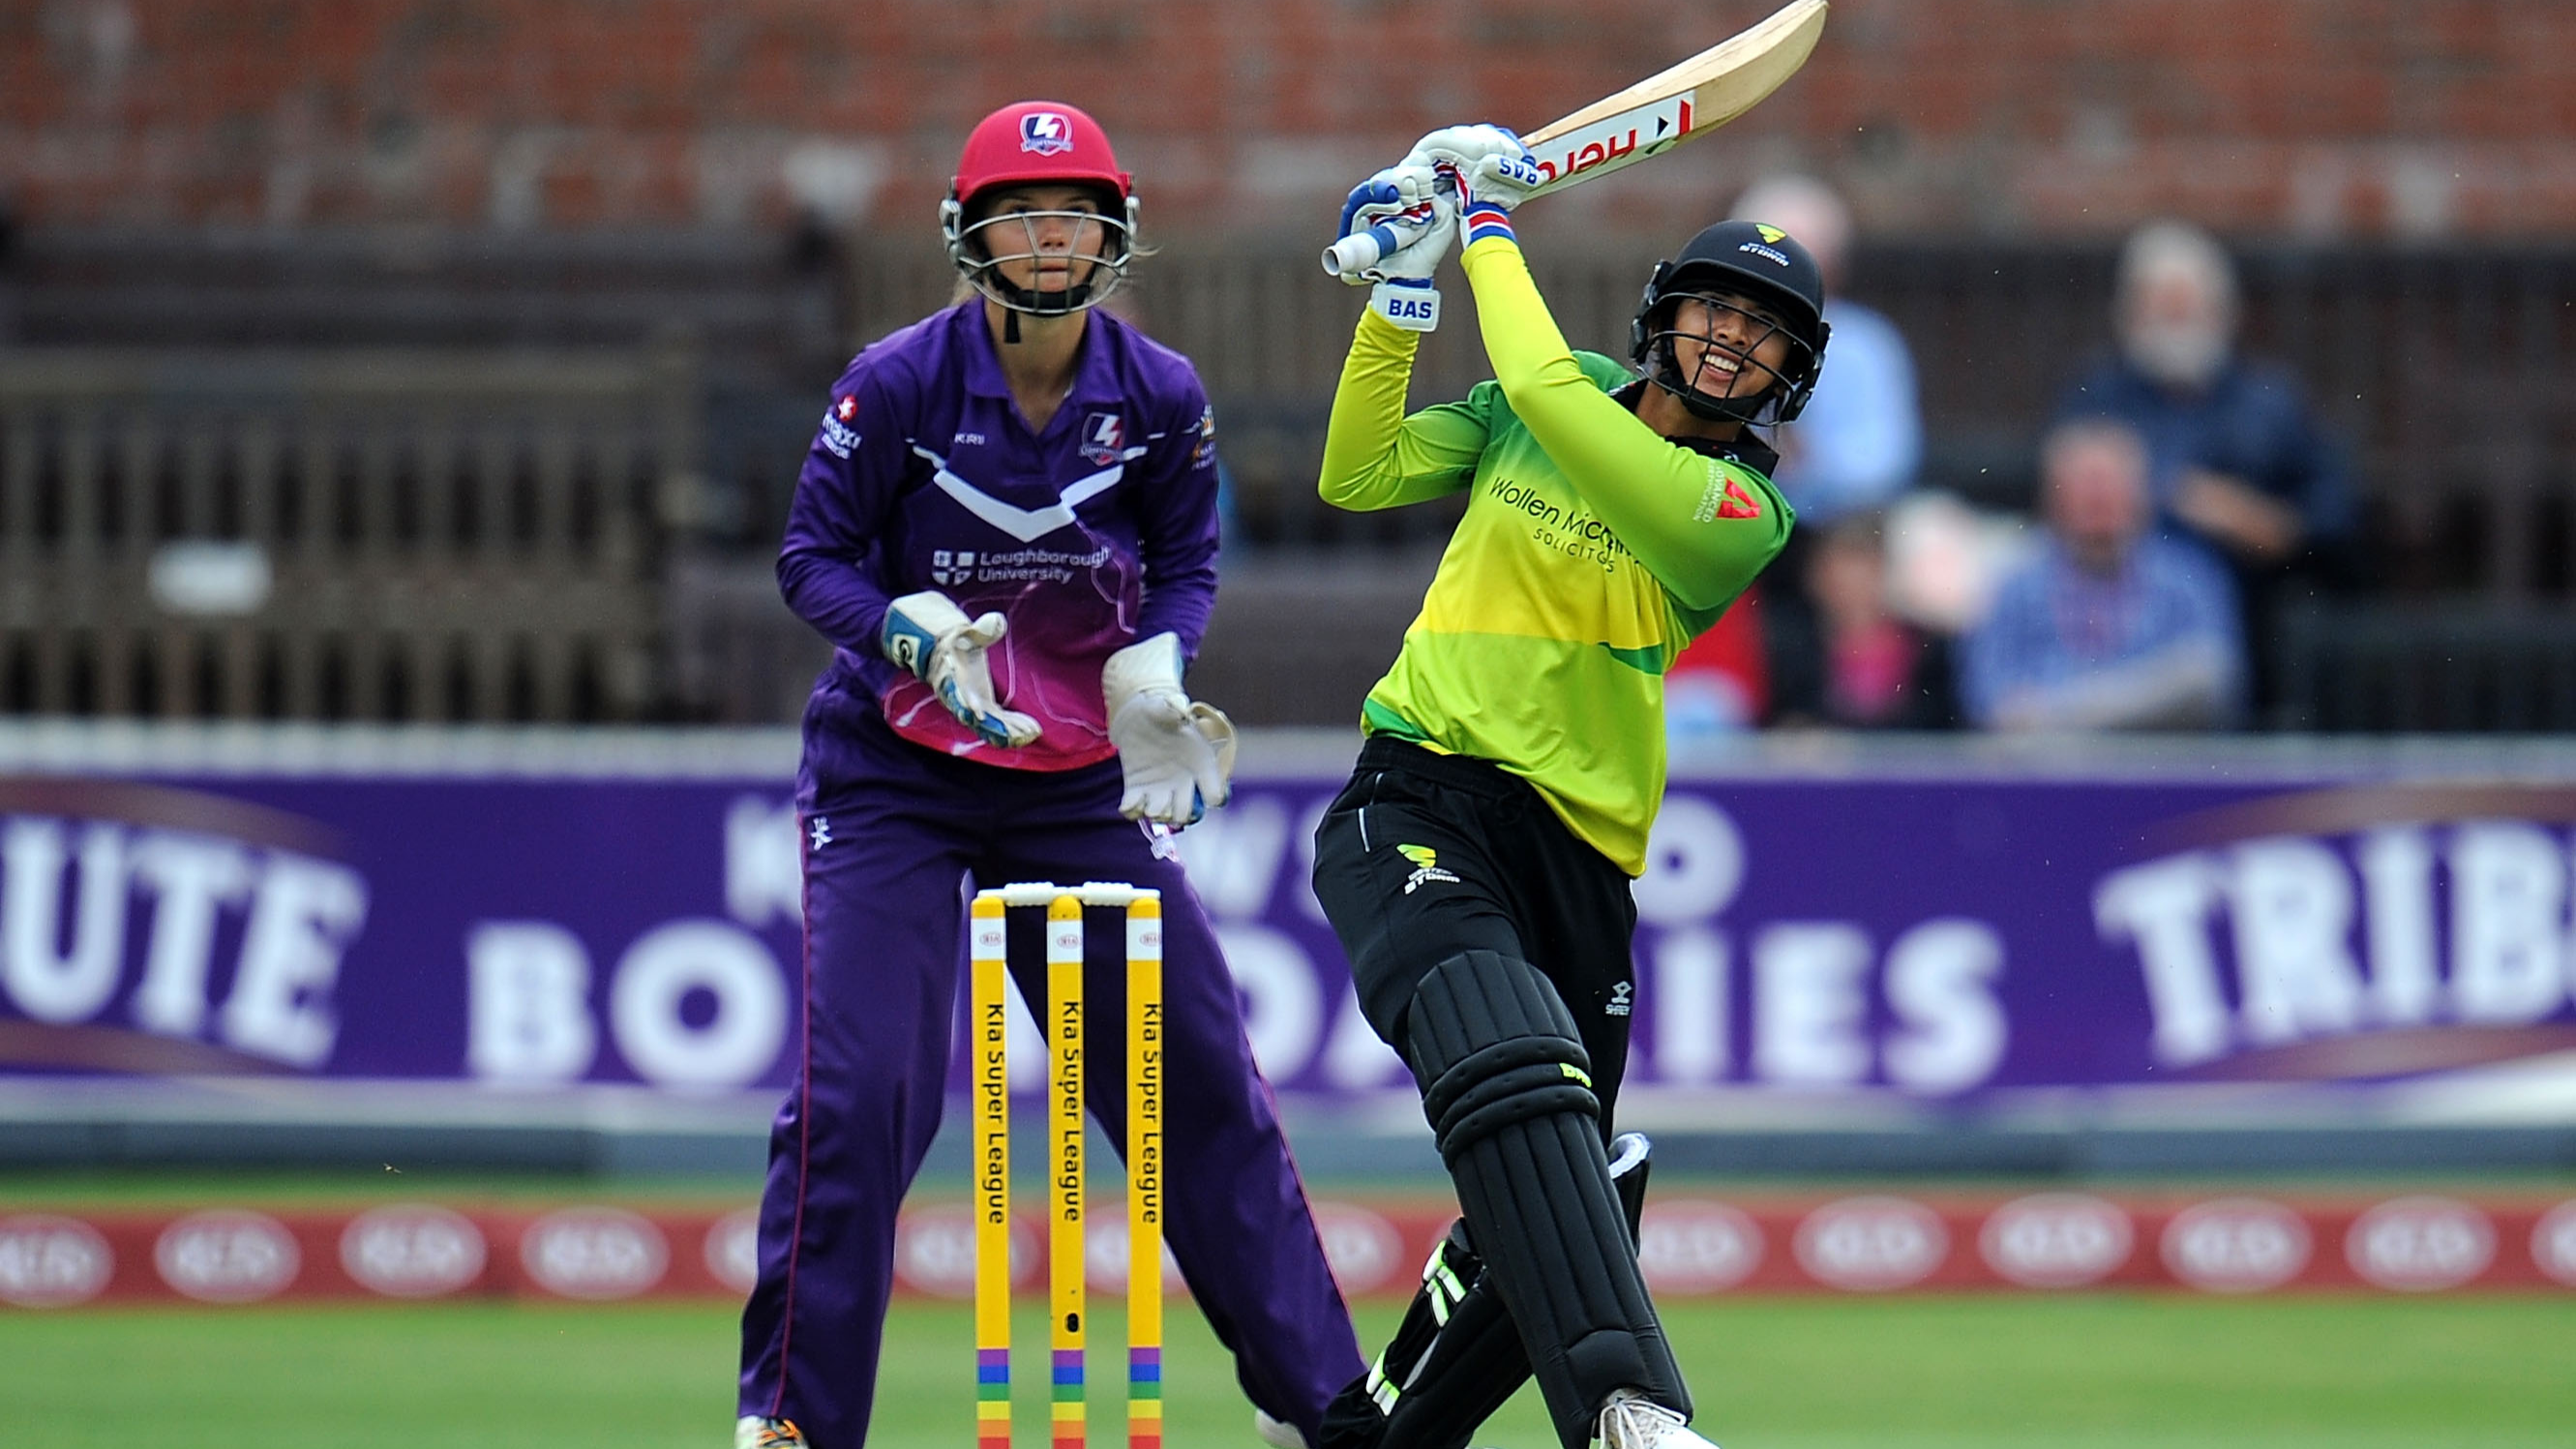 Smriti Mandhana enthralls the crowd with another dazzling batting performance in KSL